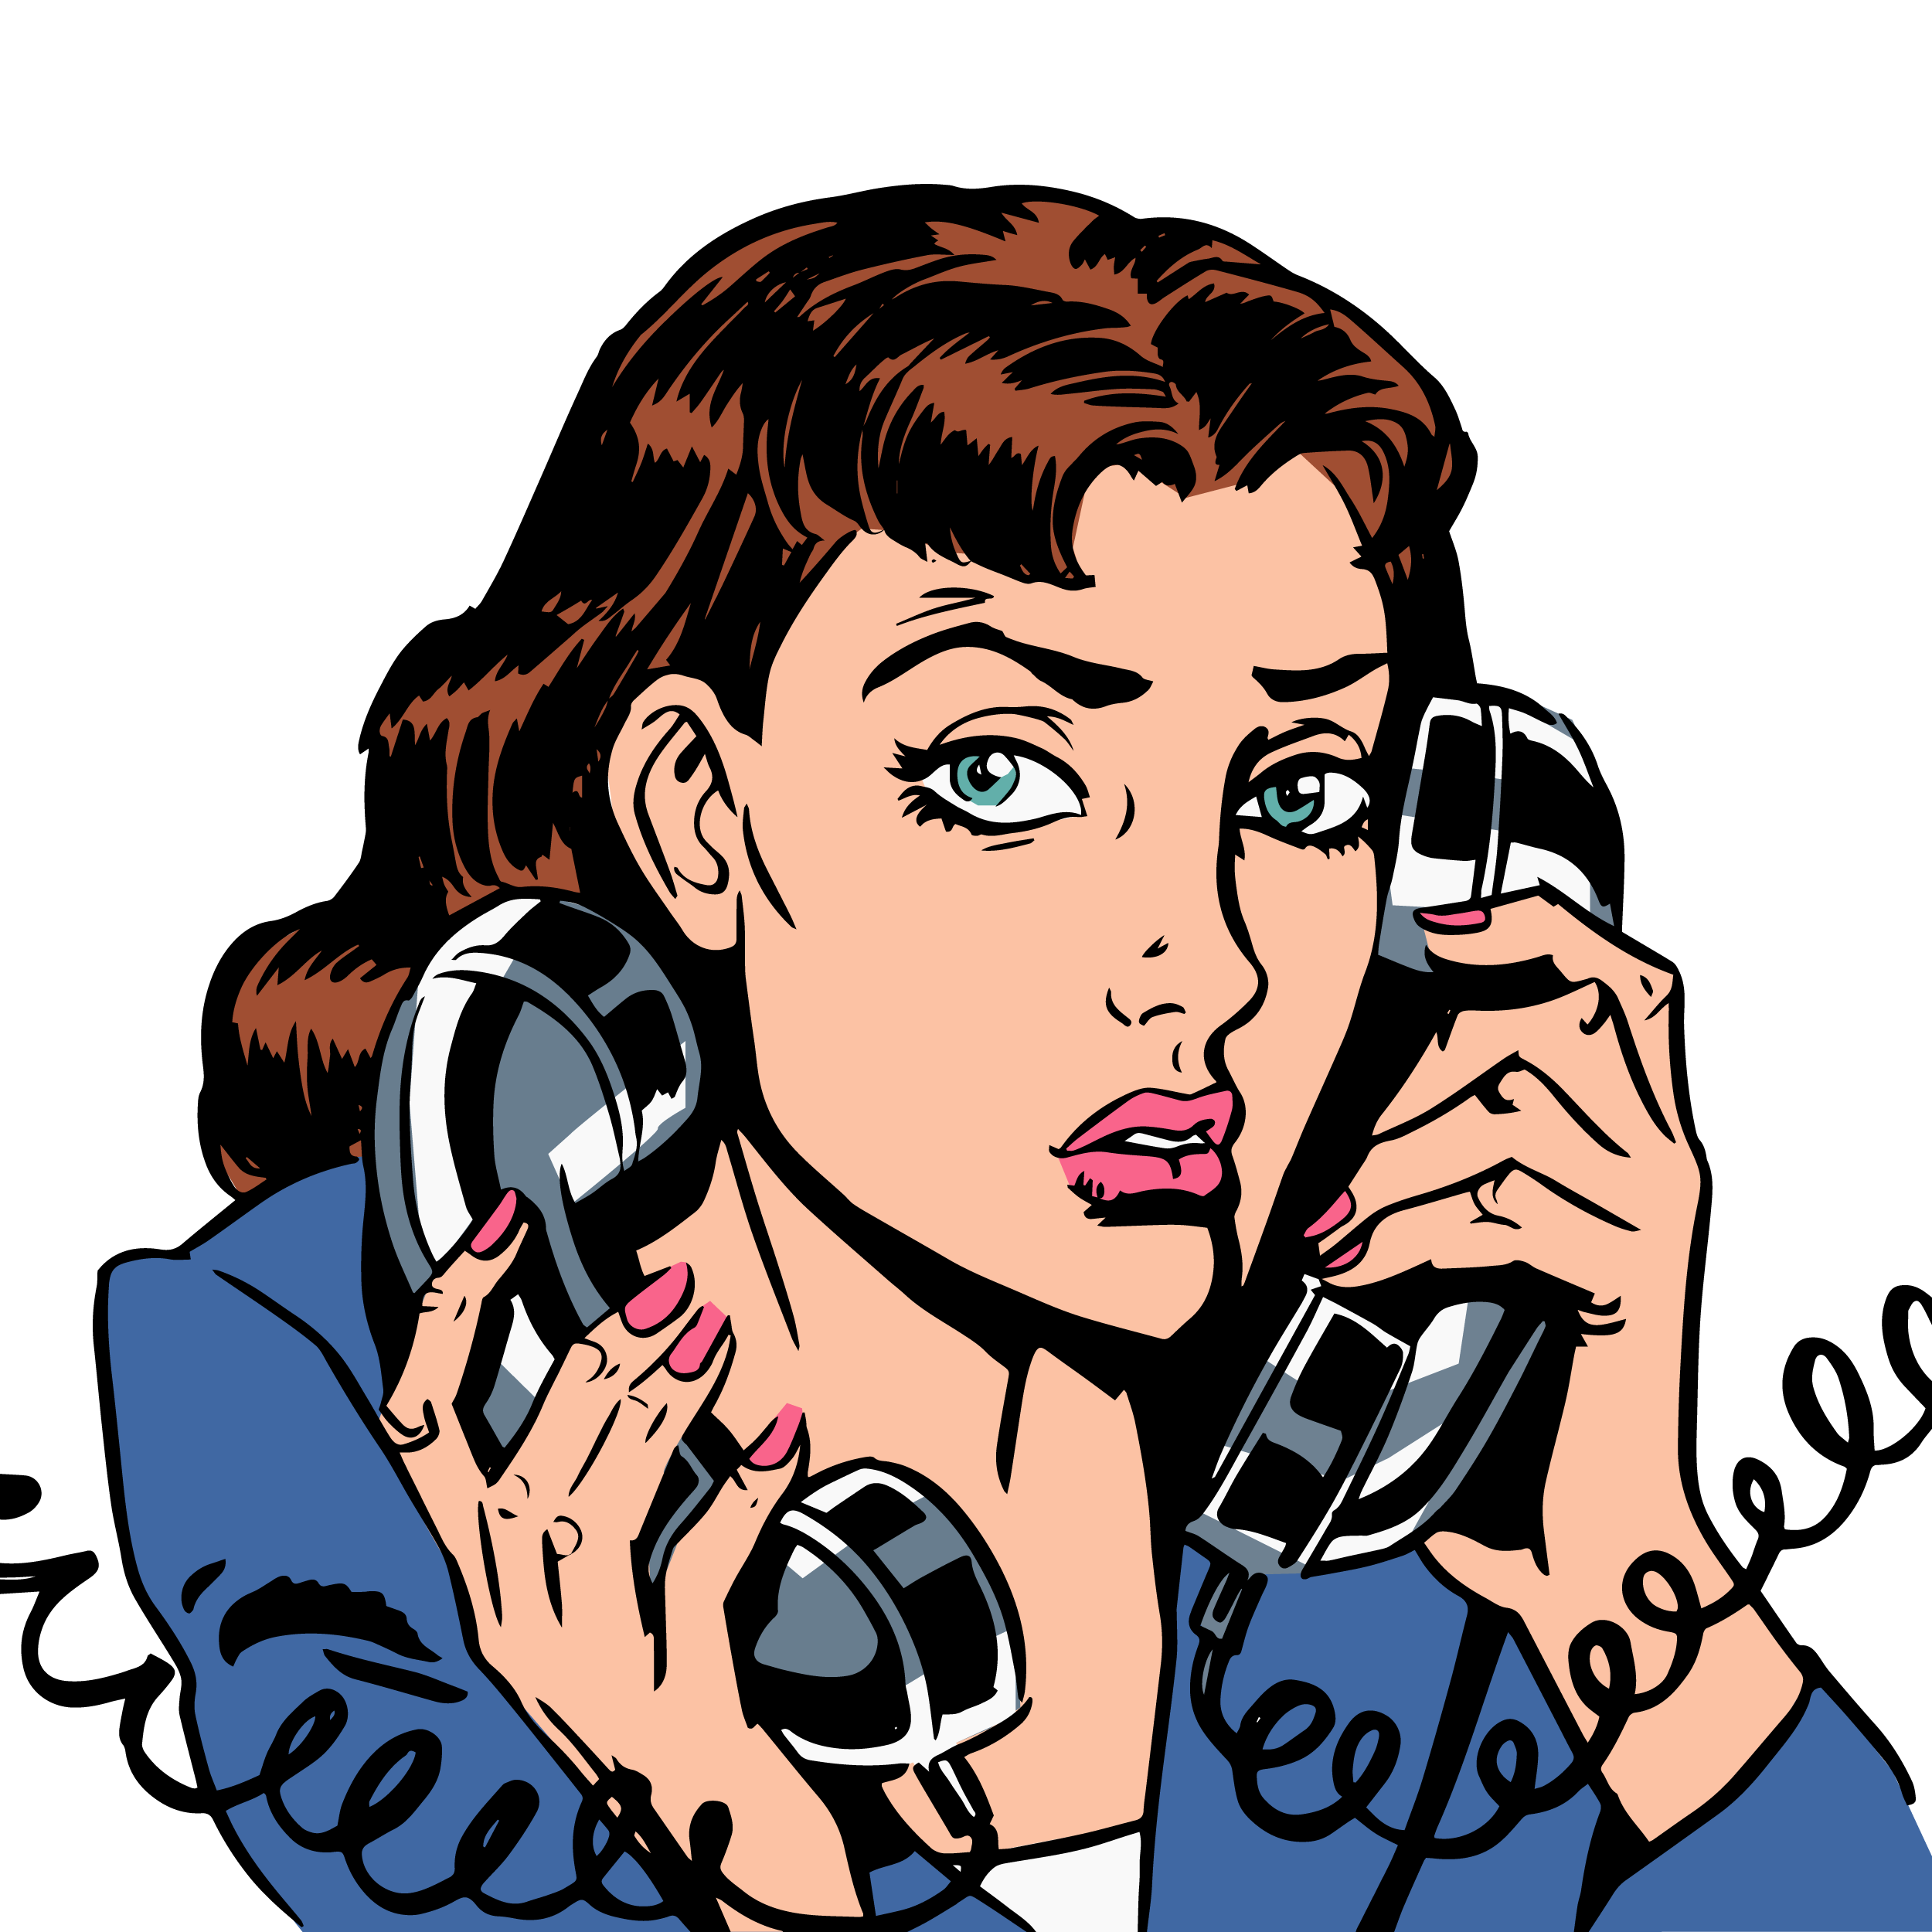 Pop art royalty free. Clipart telephone female person